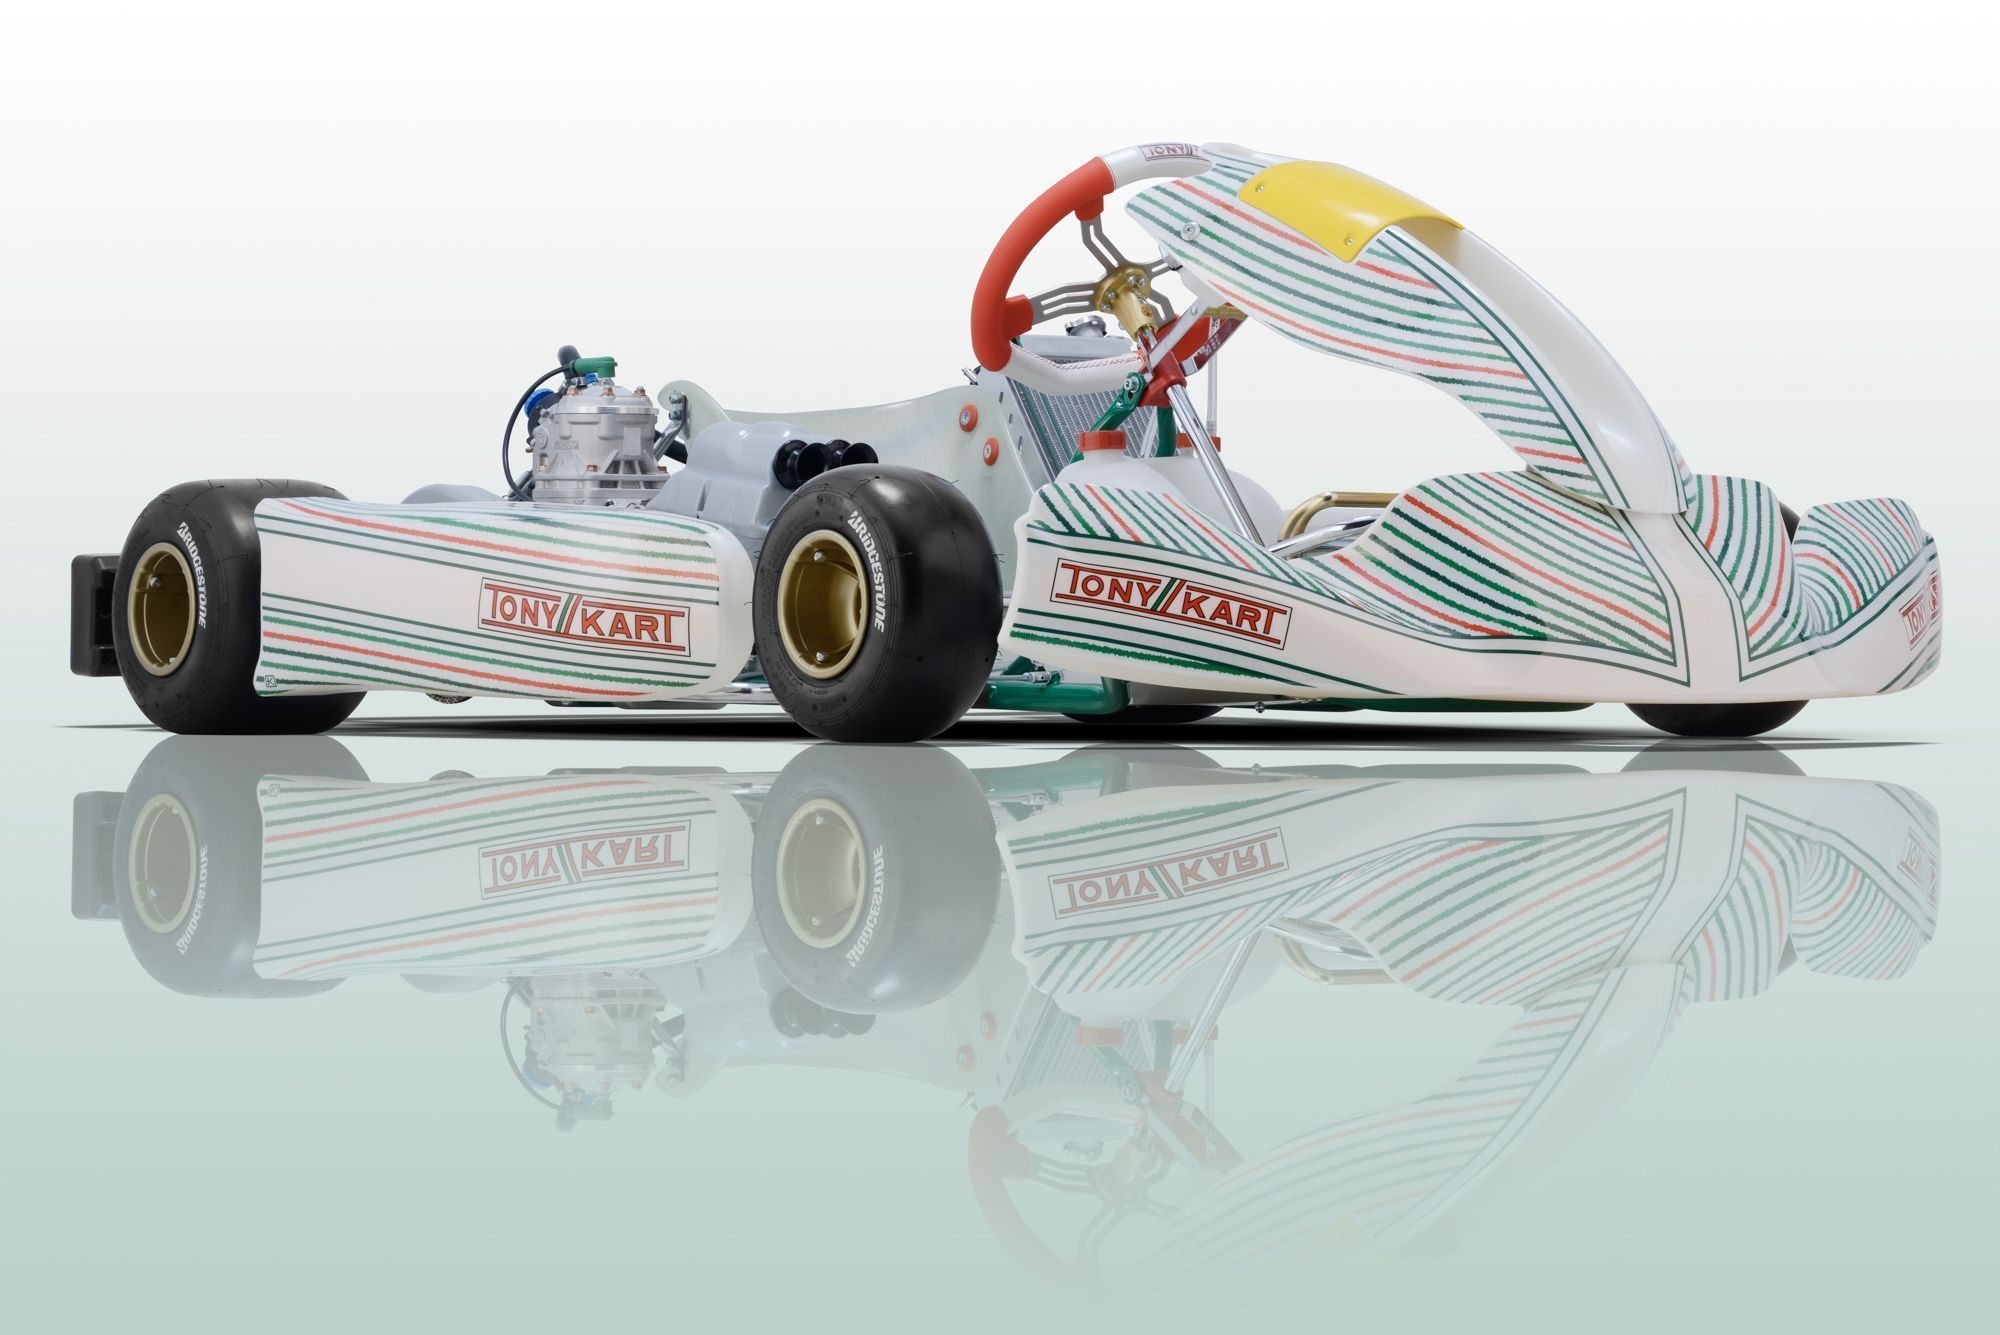 Tony Kart presents the new chassis: Racer 401R, Krypton 801R